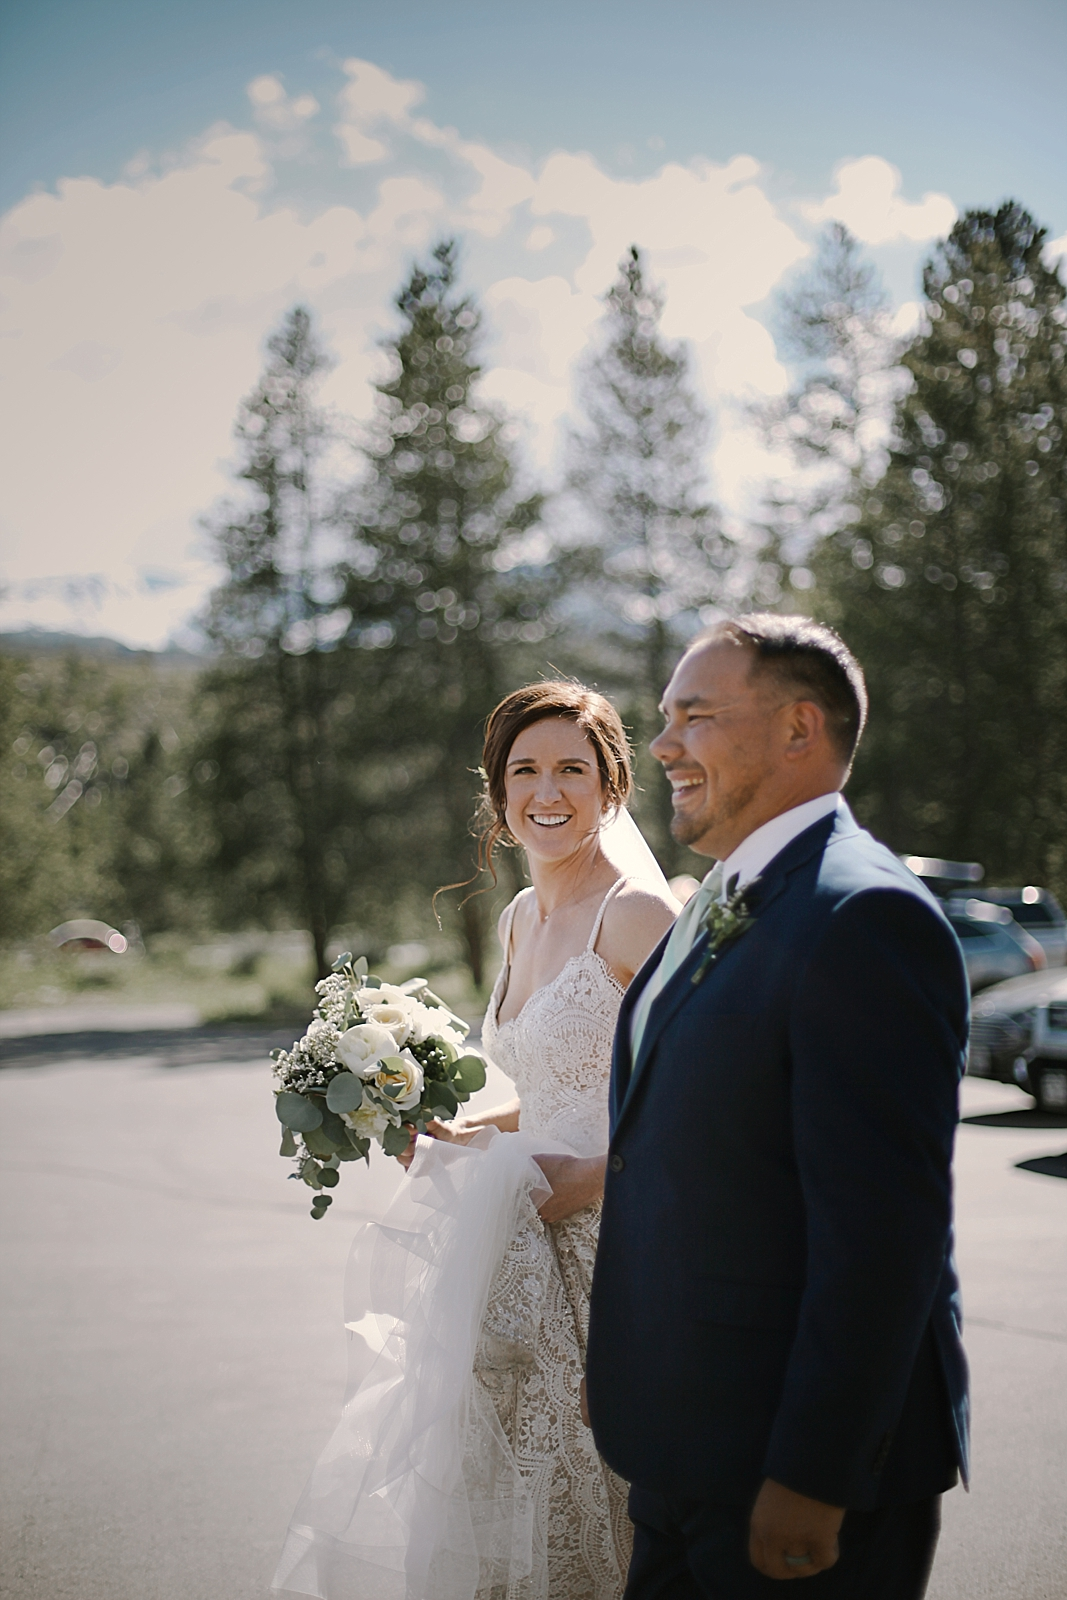 bride and groom at agape outpost, breckenridge colorado wedding, breckenridge colorado wedding photographer, the church at agape outpost wedding, agape outpost wedding photographer